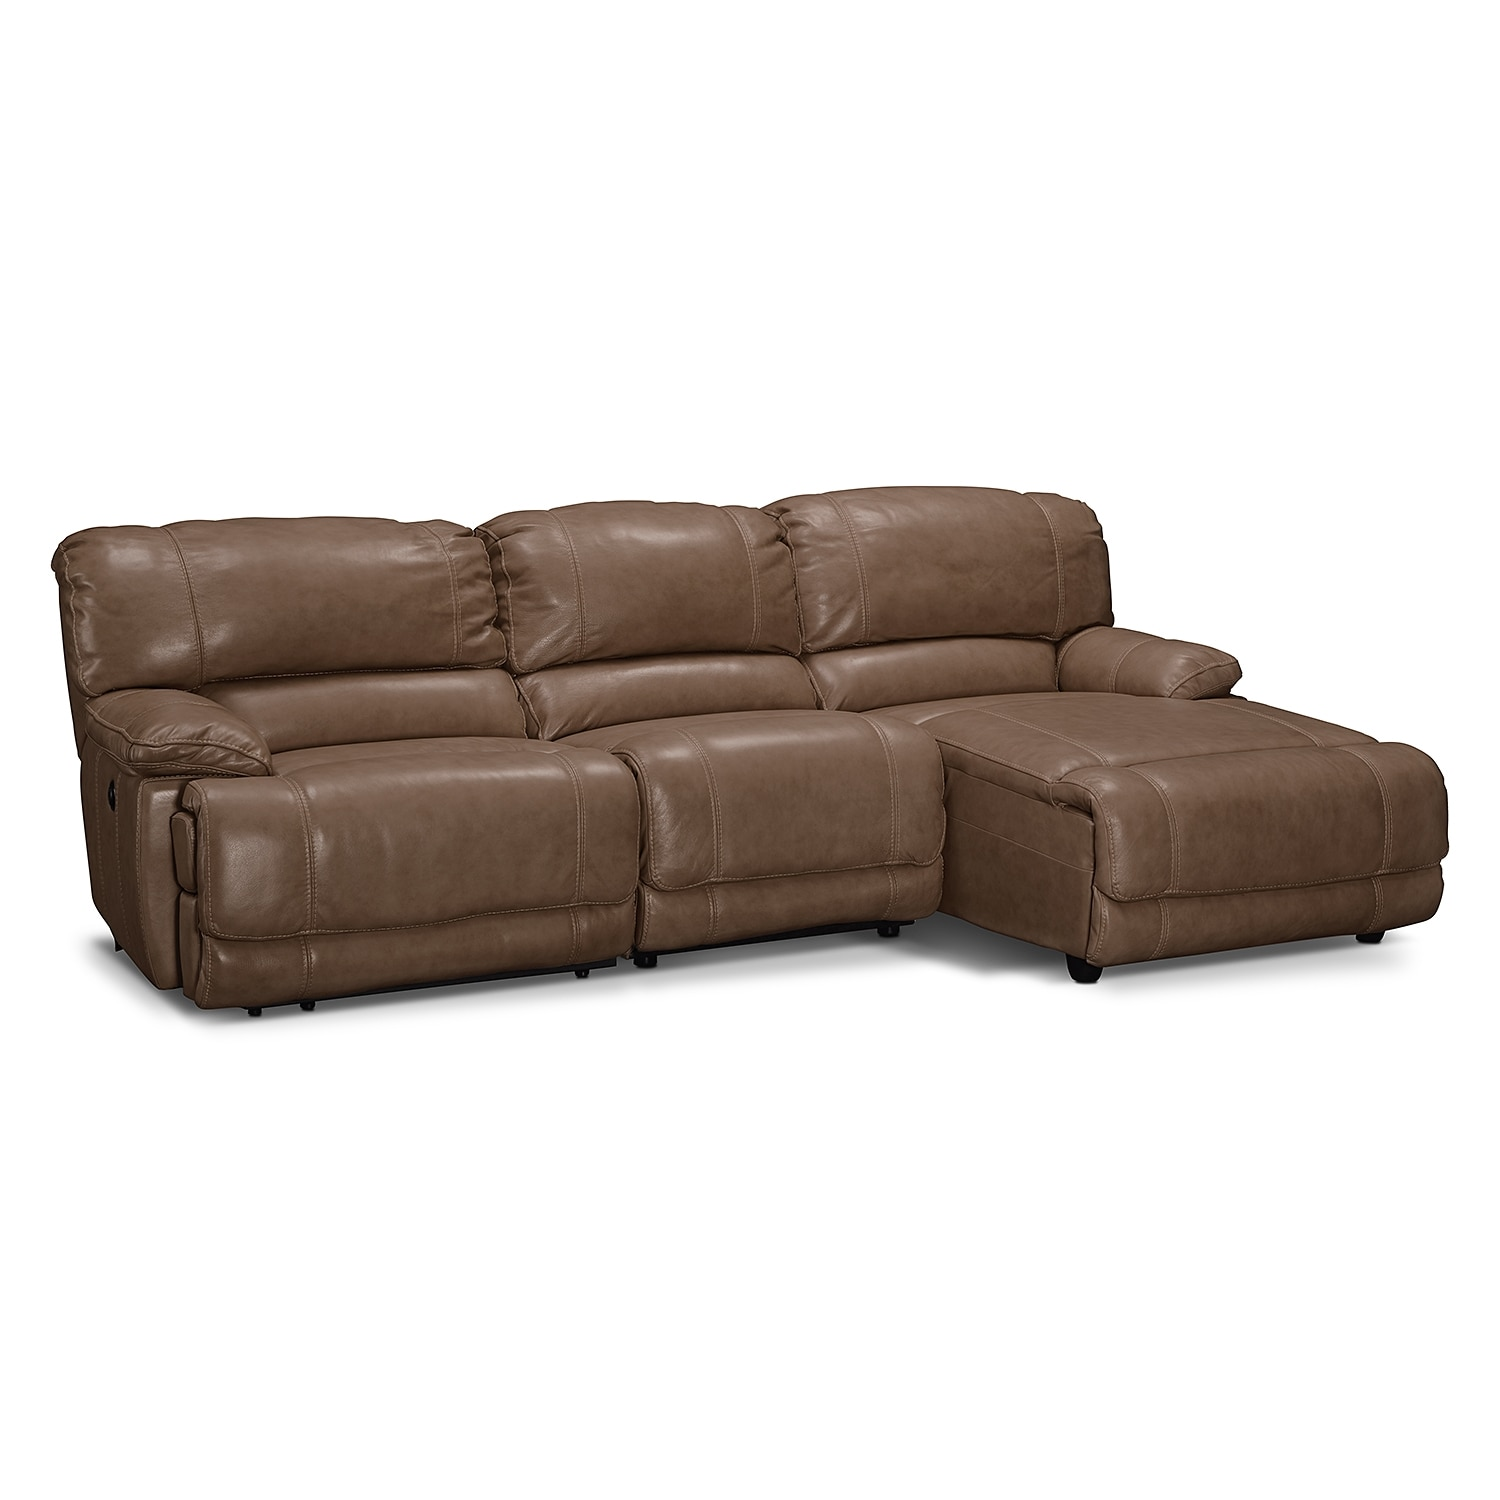 St malo 3 piece power reclining sectional with right for 3pc sectional with chaise